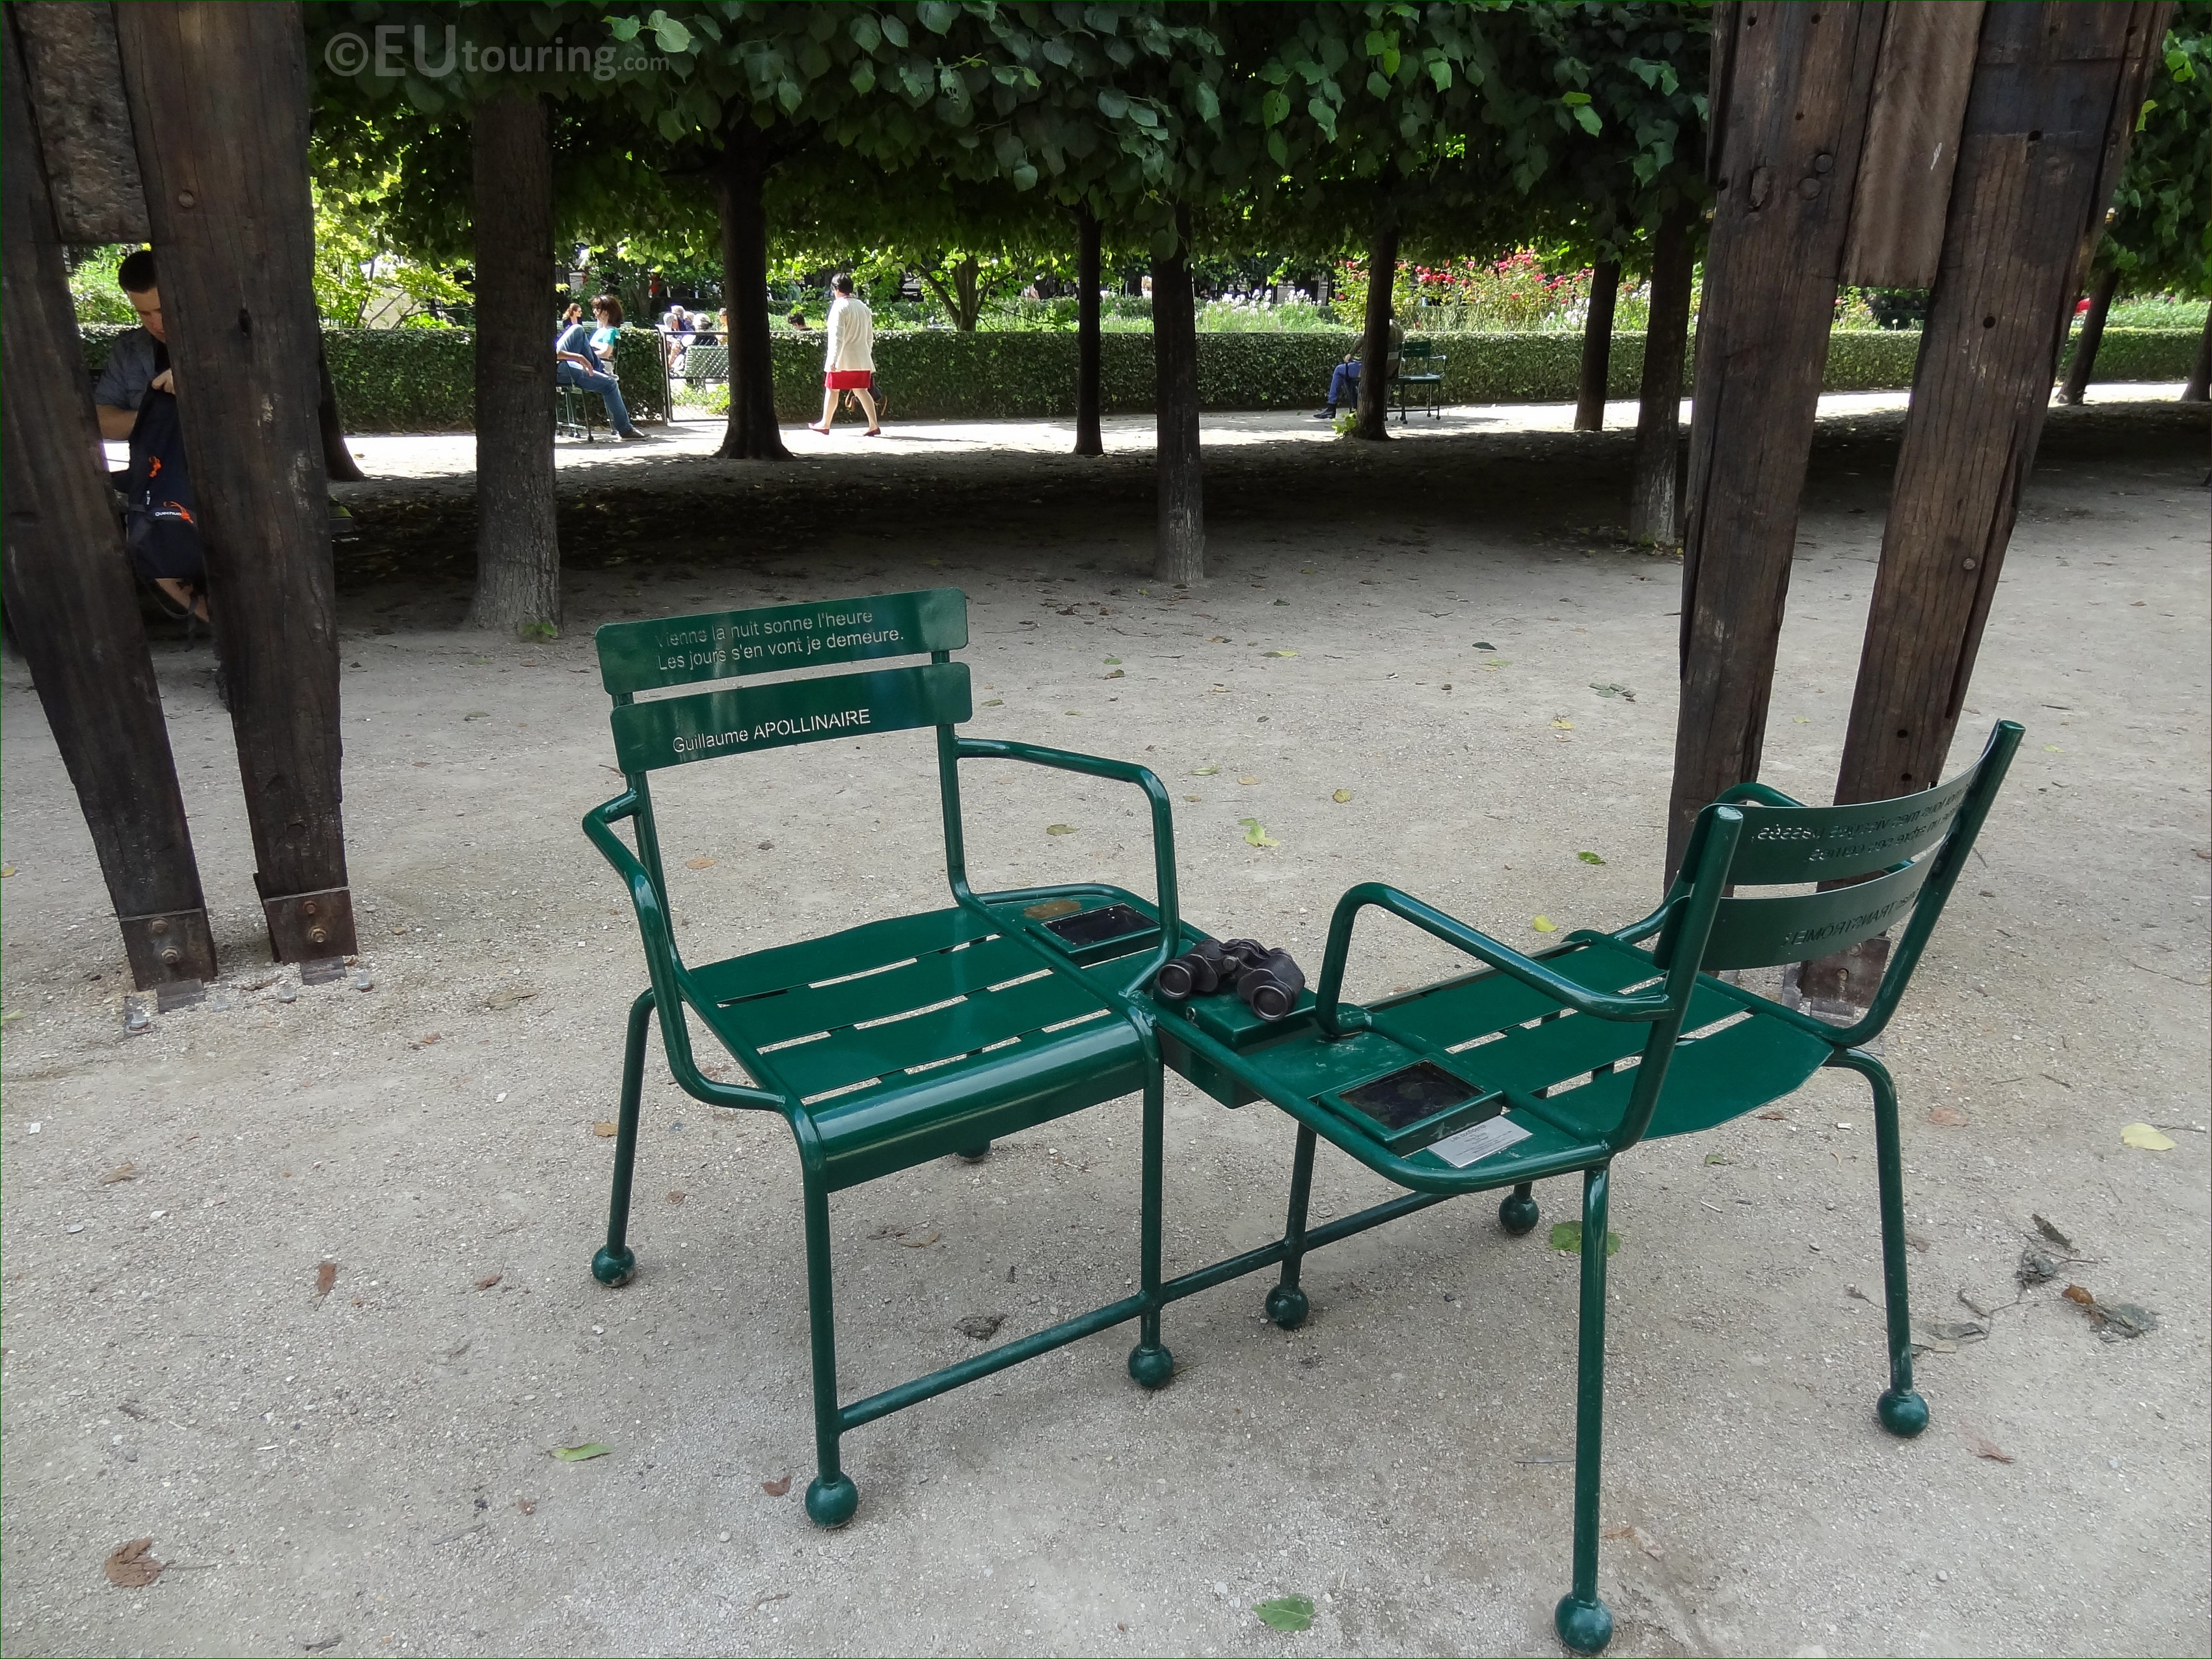 Les Confidents Chairs Within Palais Royal Gardens Page 1163